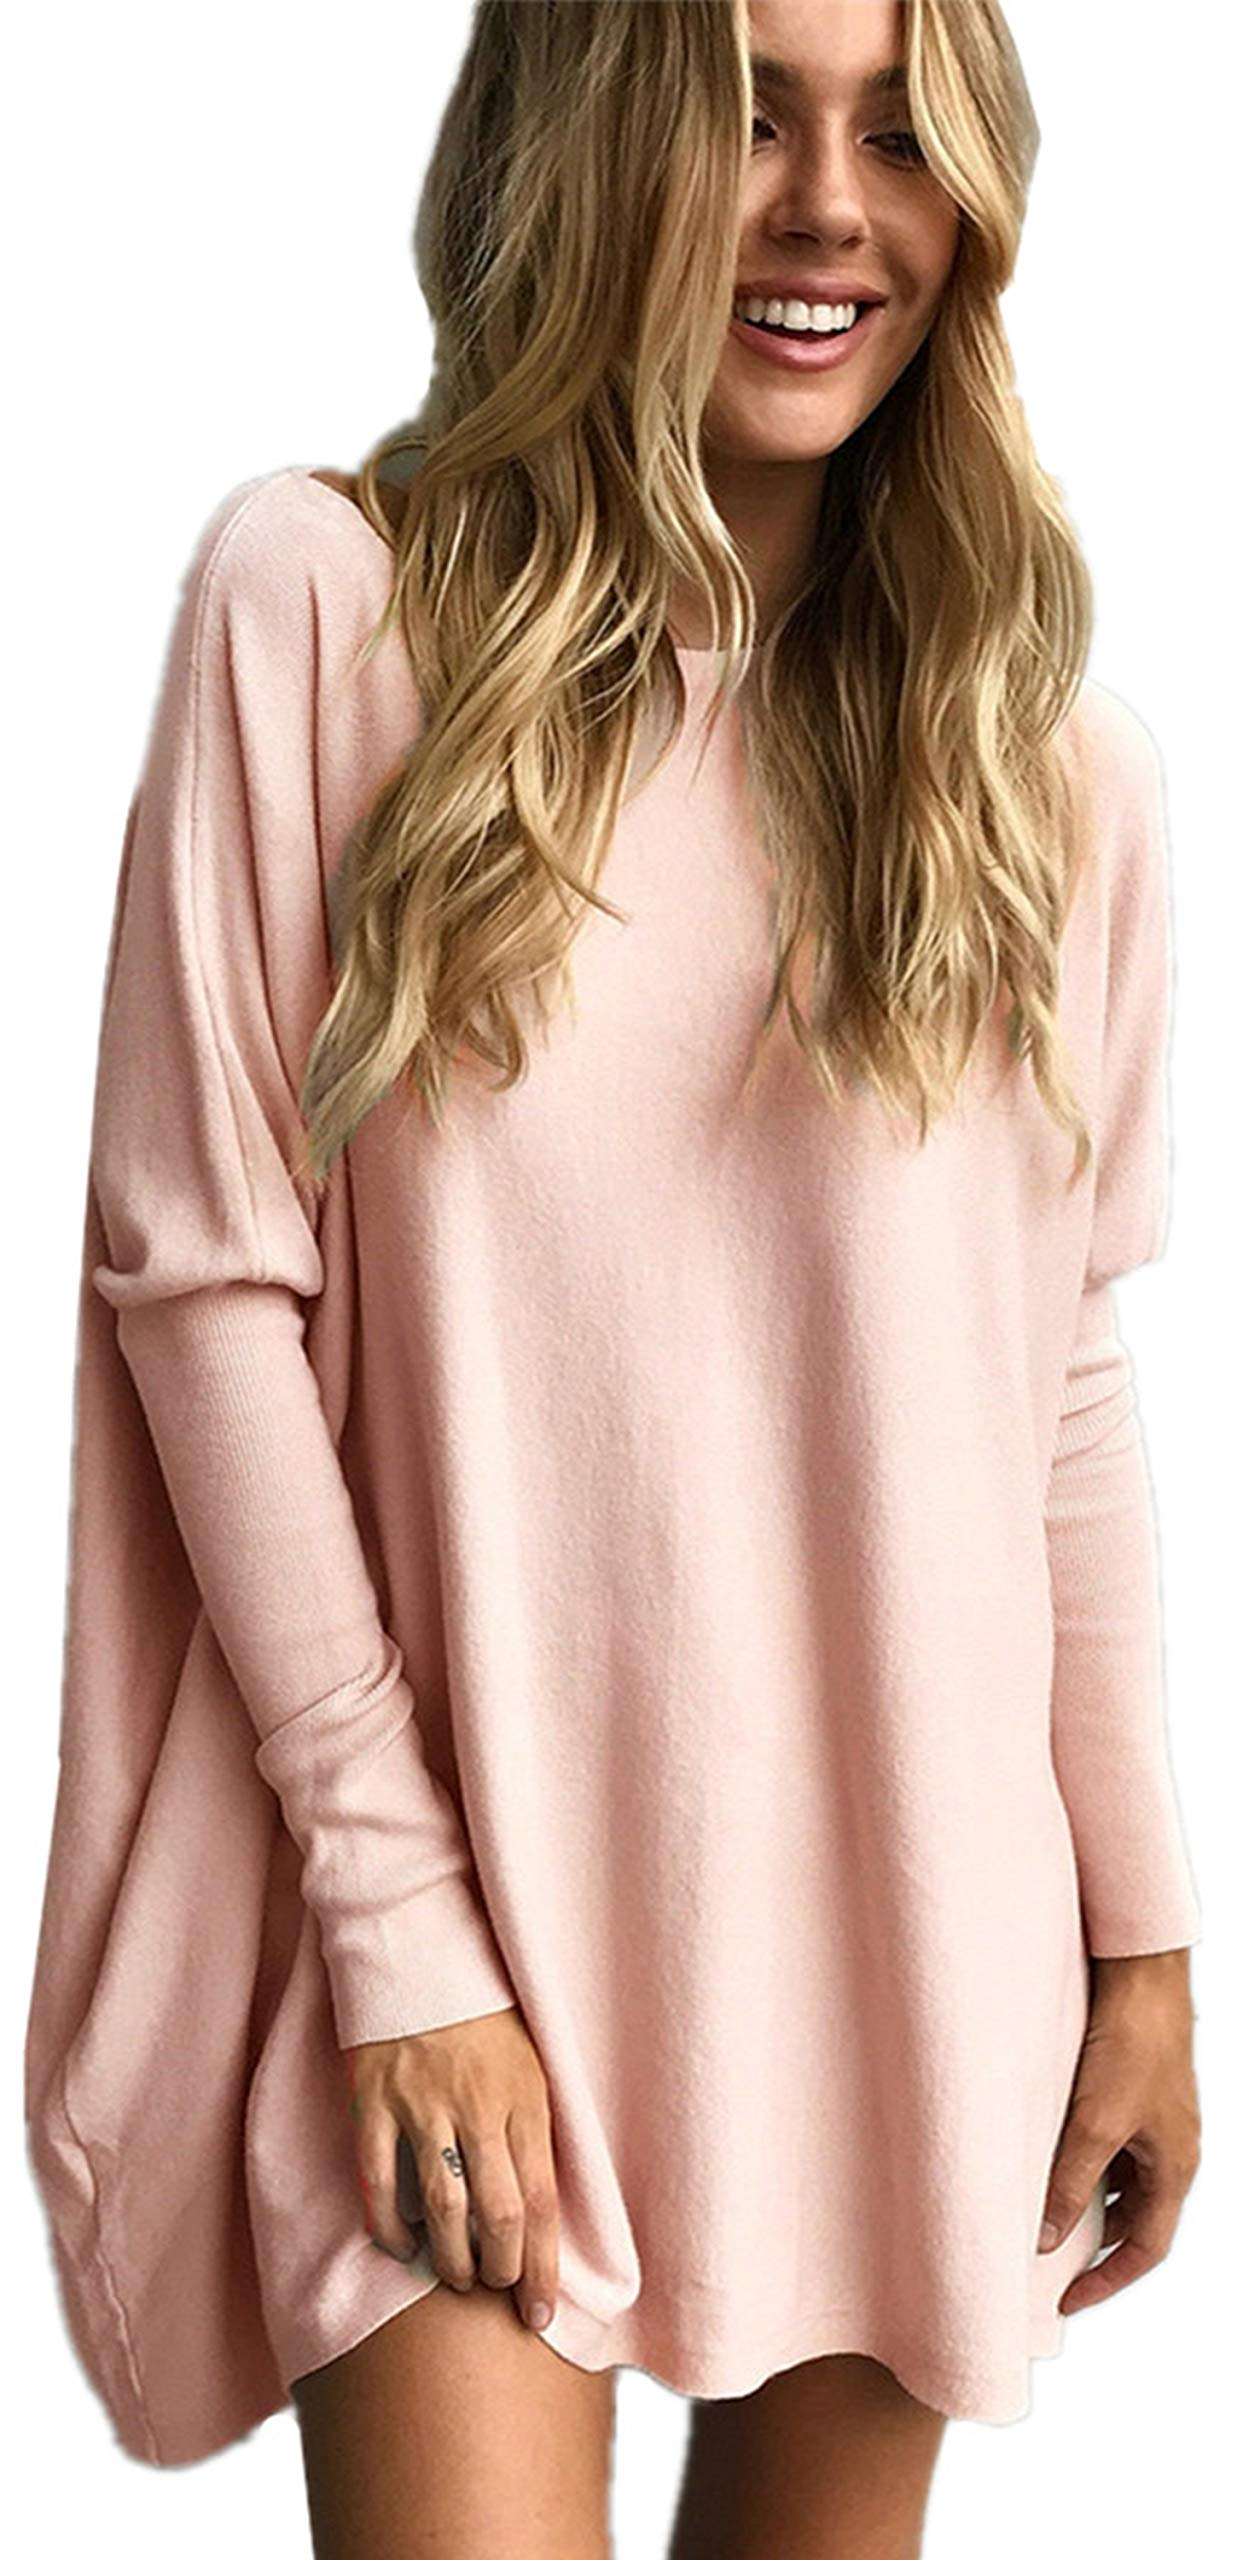 LIYOHON Women's Tunic Tops for Leggings Casual Oversized Shirts Batwing Long Sleeve Loose Fitting Pullover Tops Tunics 1-Pink L by LIYOHON